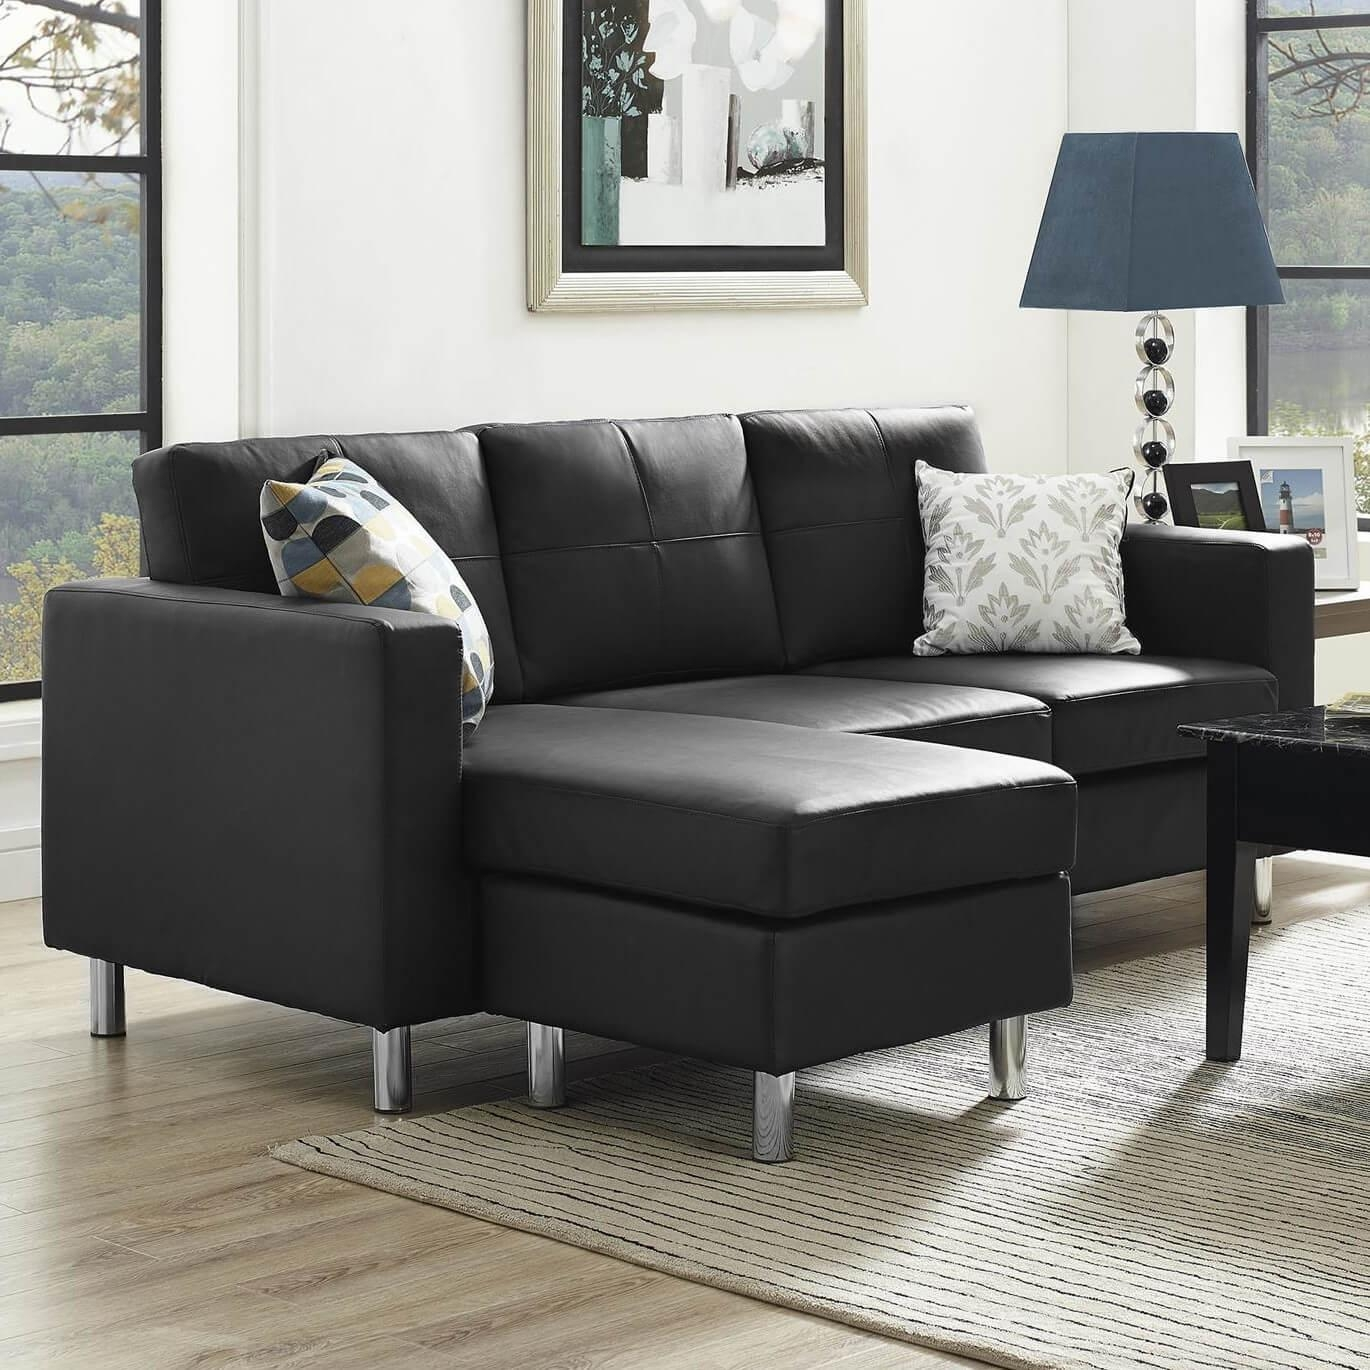 13 Sectional Sofas Under $500 (Several Styles) Within Modern Microfiber Sectional Sofa (Image 1 of 20)